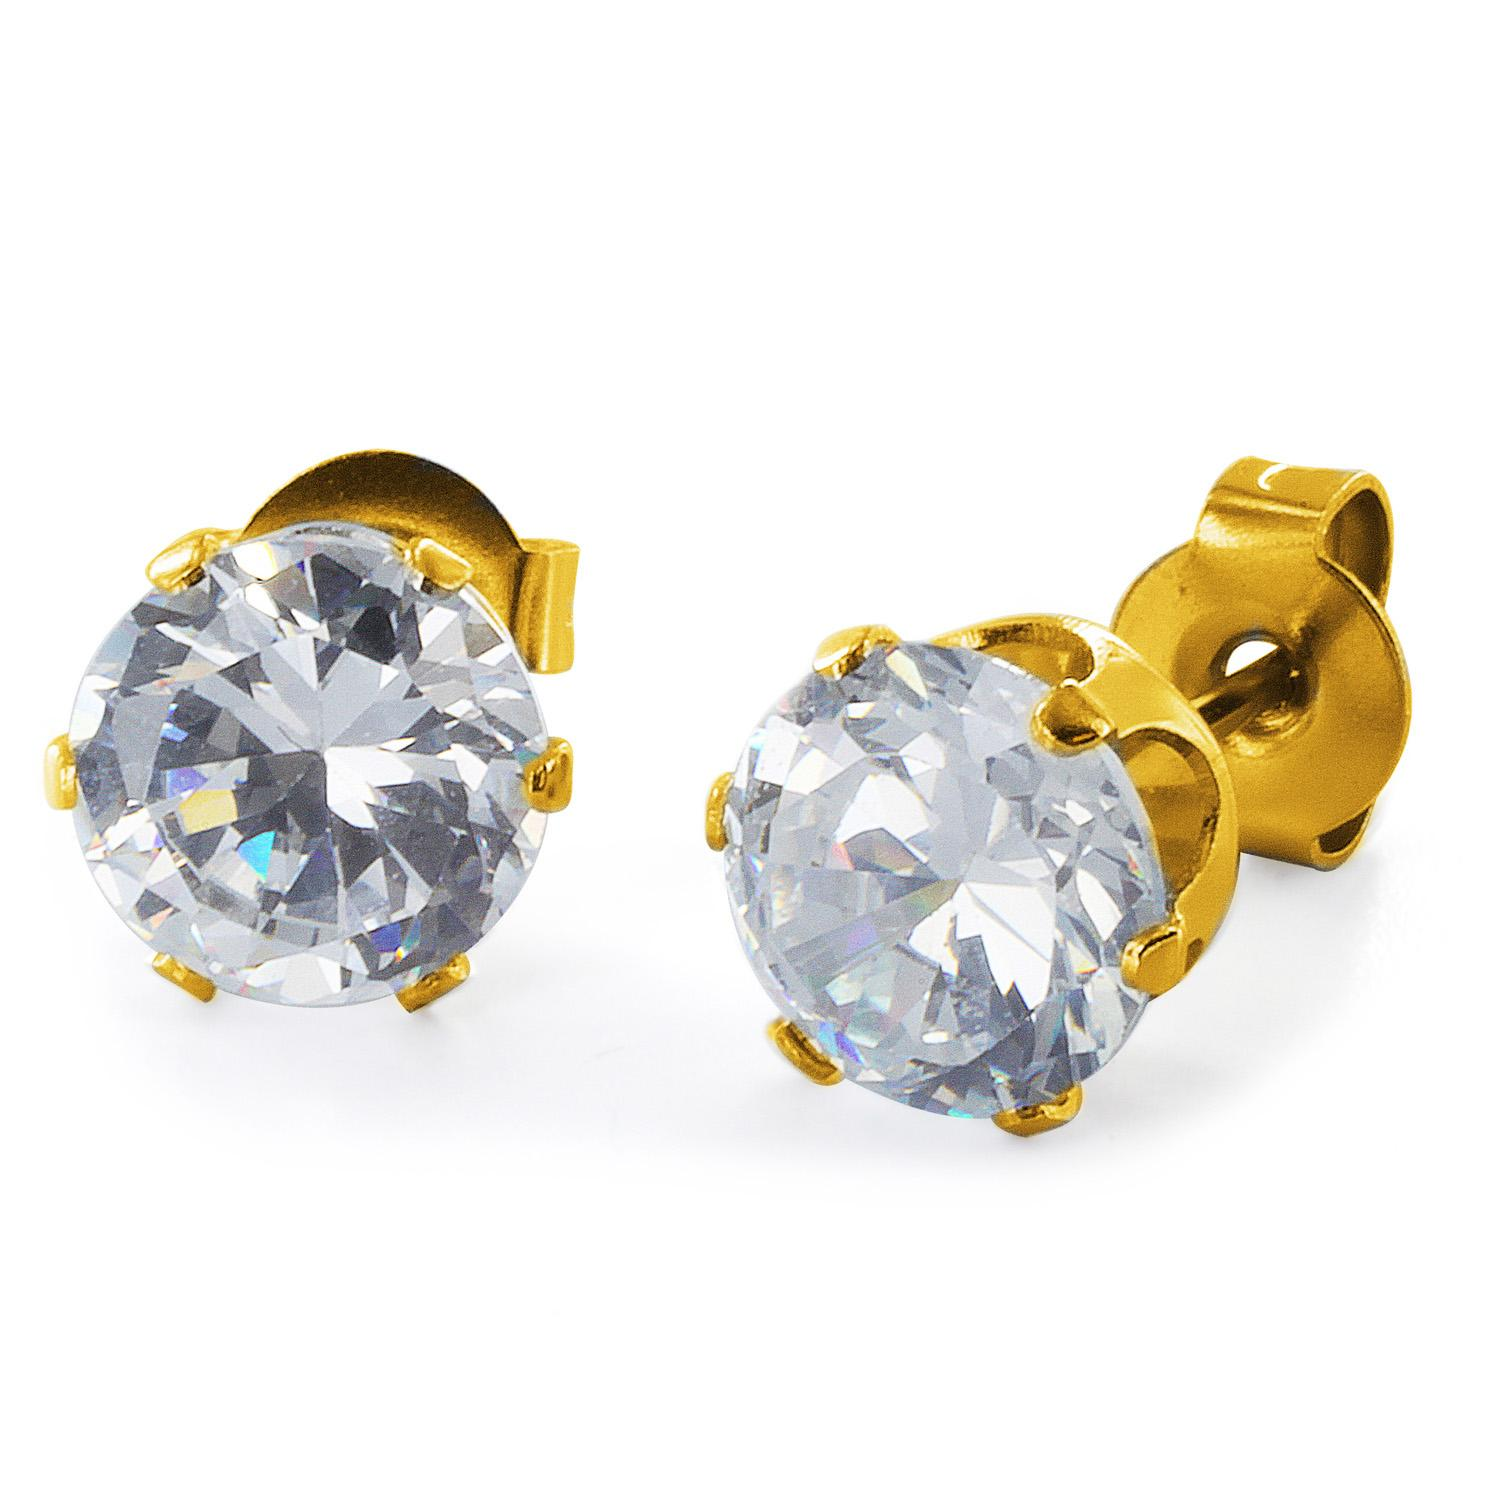 Gold Plated Stainless Steel Stud Earrings with Round Clear CZ - 6 mm